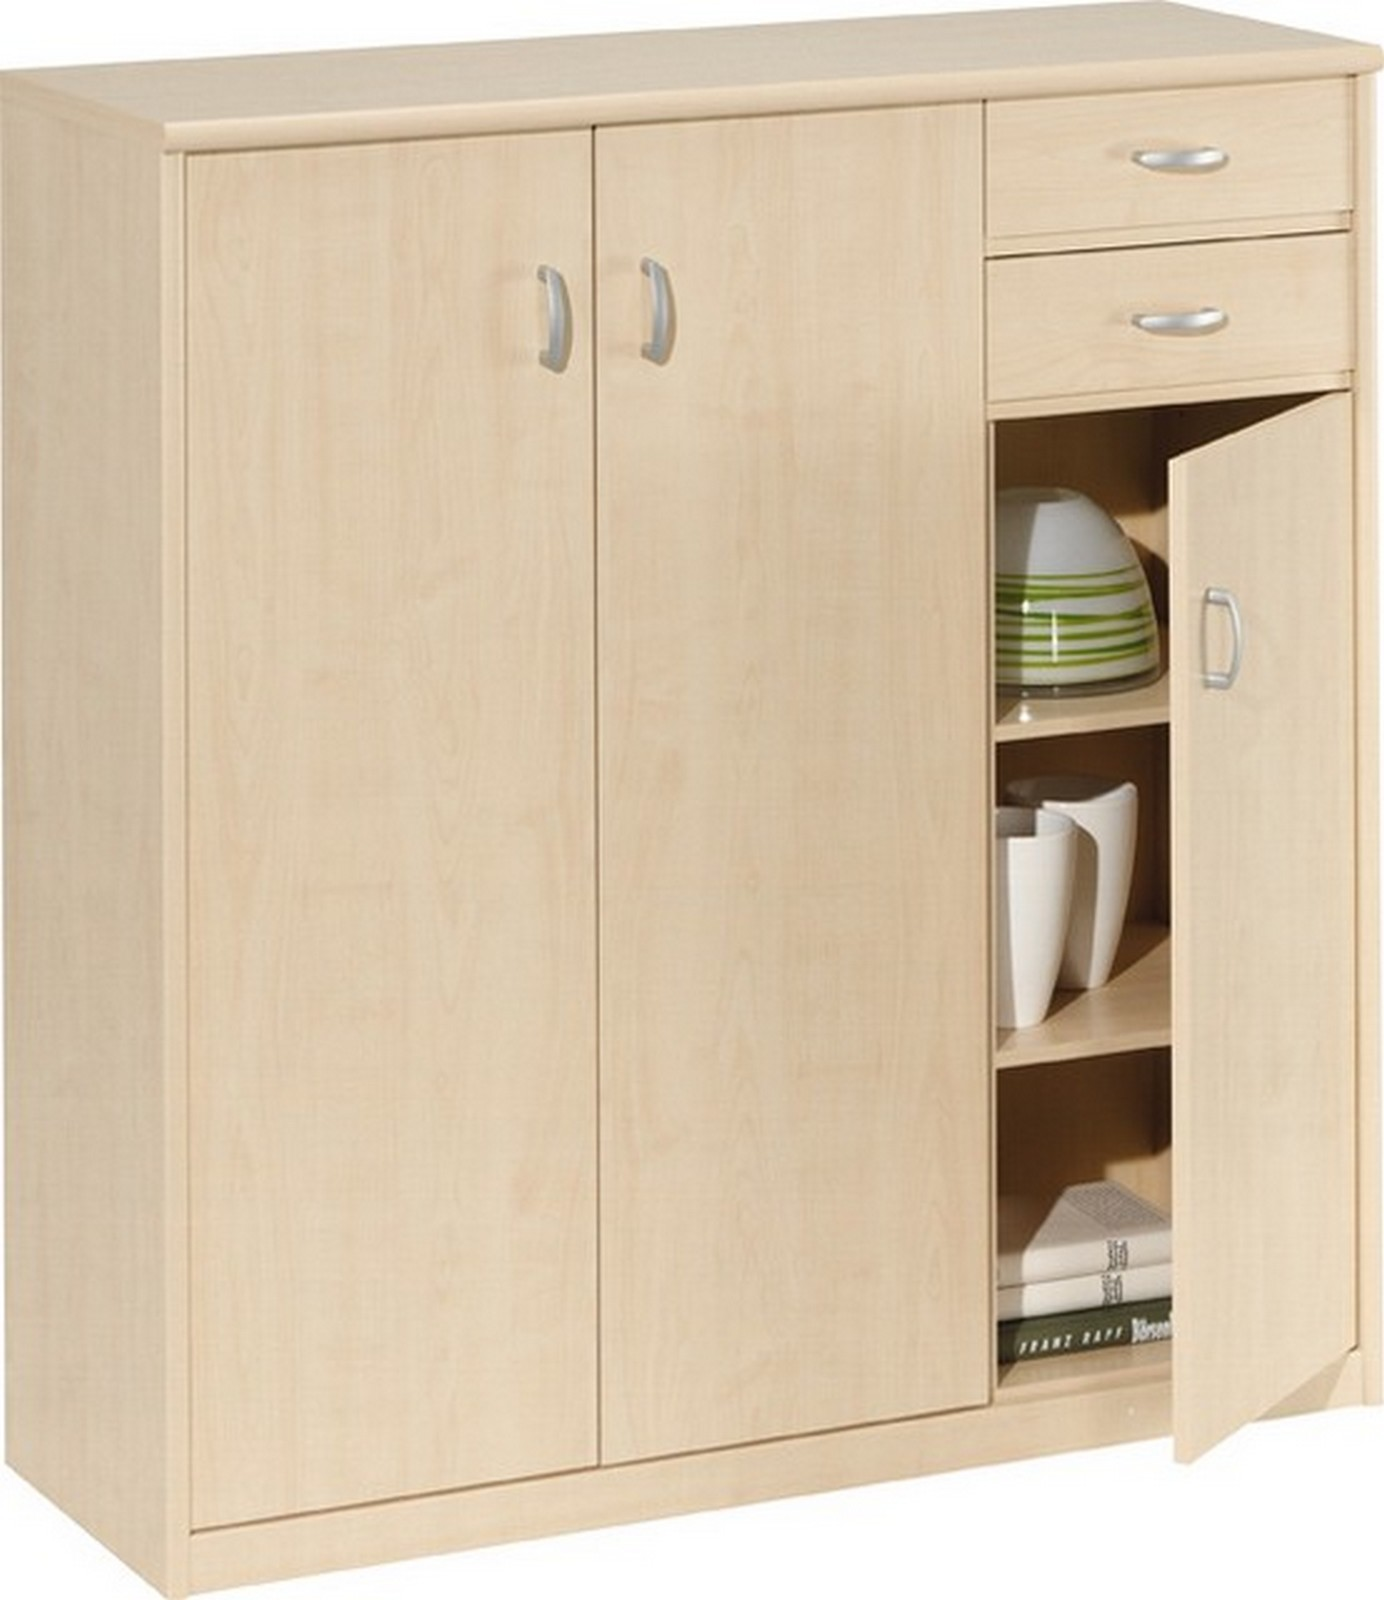 Soft Plus Ahorn Soft Plus Kommode Sideboard Soft Plus Buche Kommode Ebay Kommode